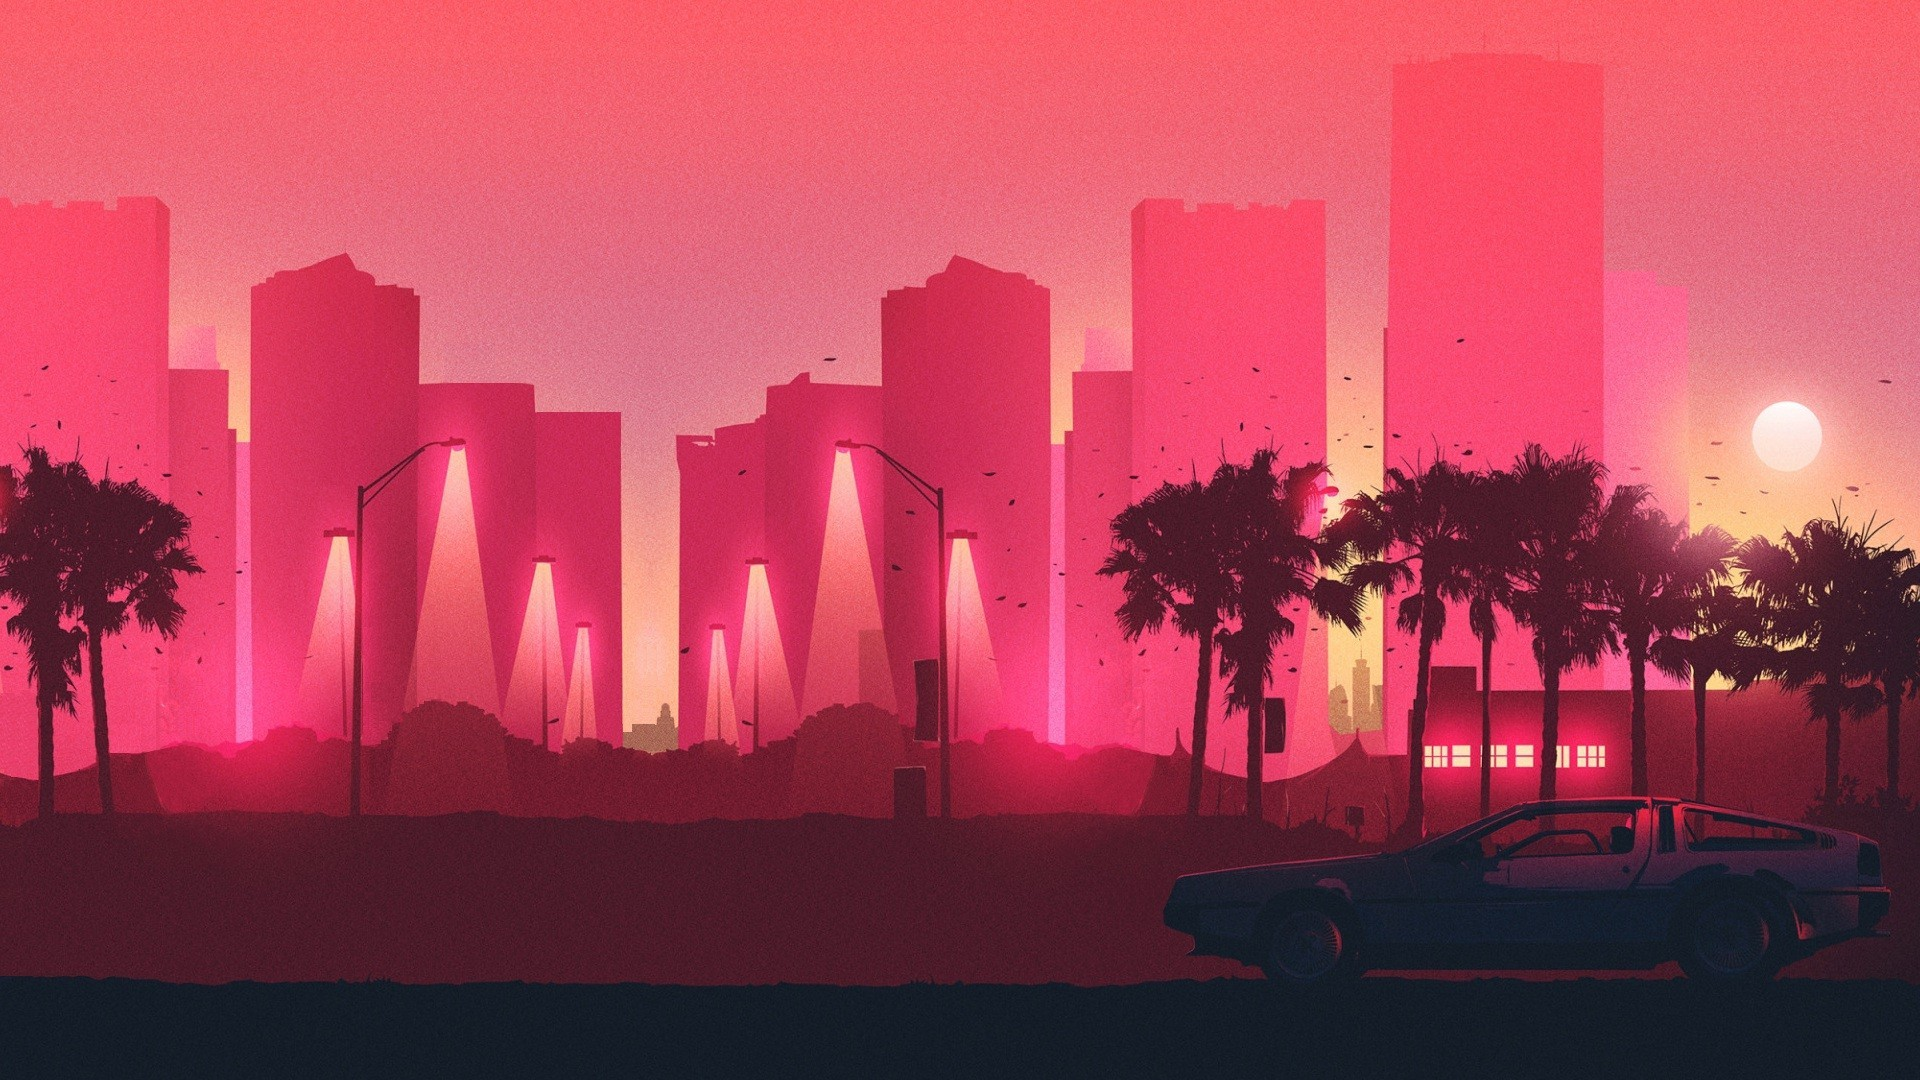 Hd Retina Display Wallpapers Download Free: Synthwave Wallpaper ·① Download Free High Resolution